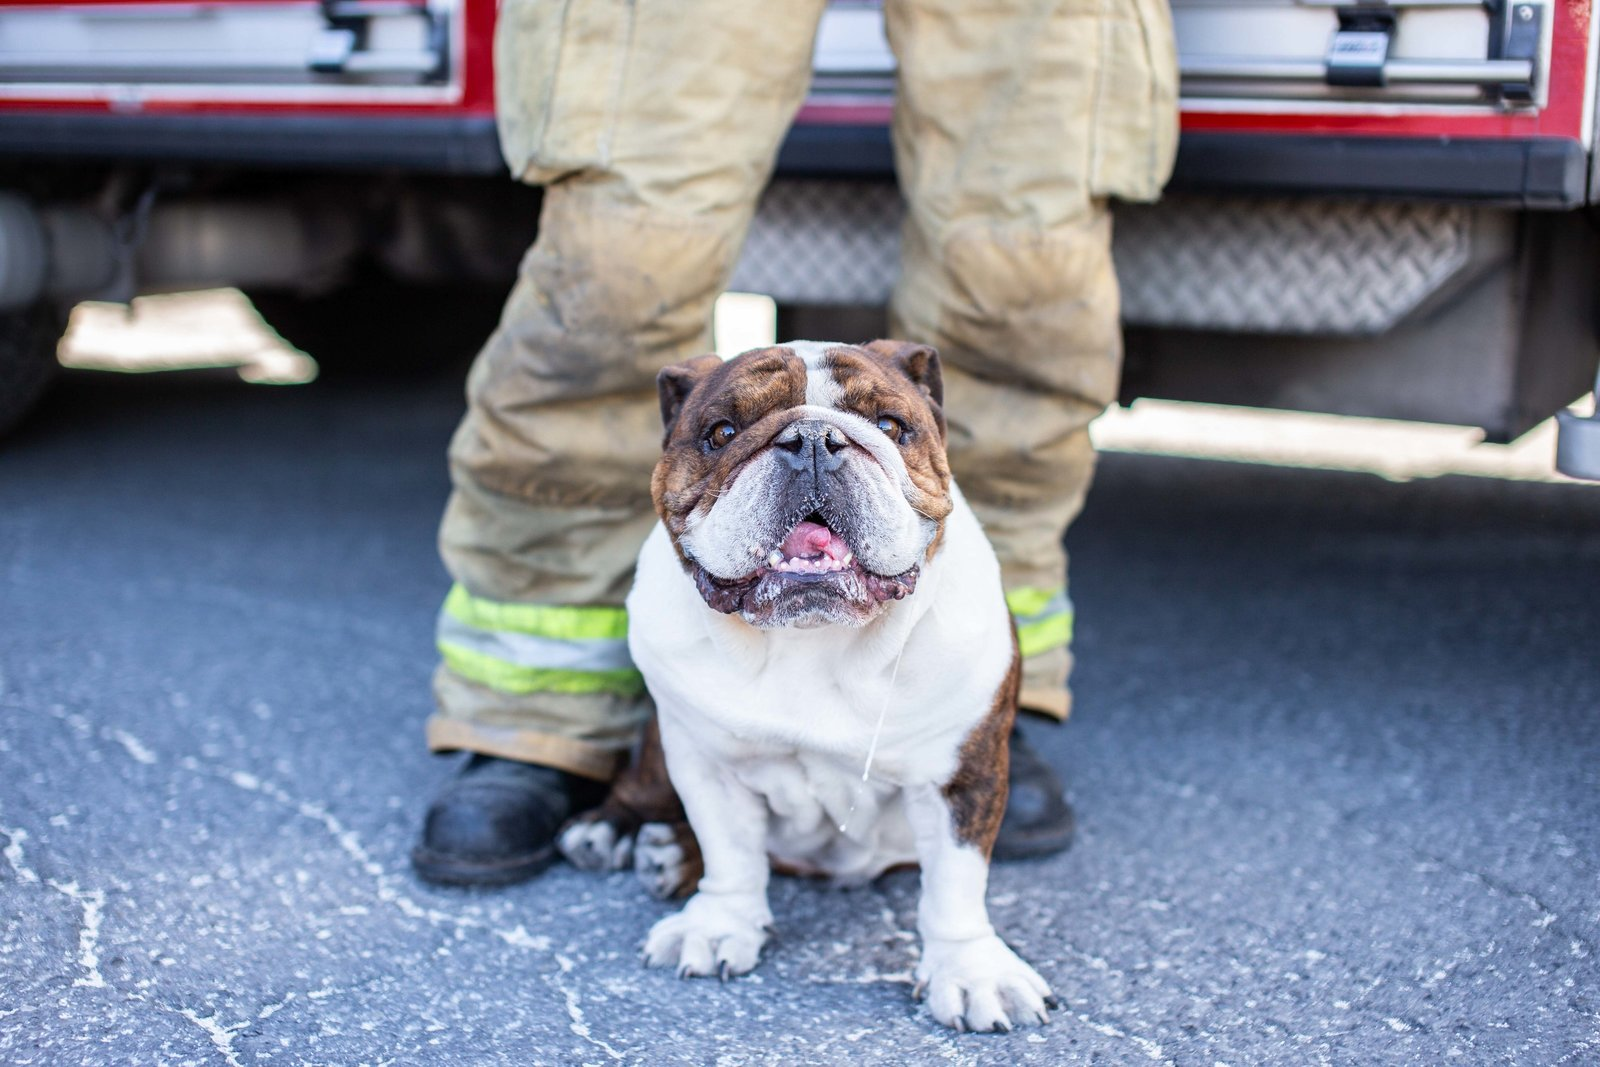 Firefighter-Animal-Hero-Brittany-Gawley-Photography-Westboro-Studio-13